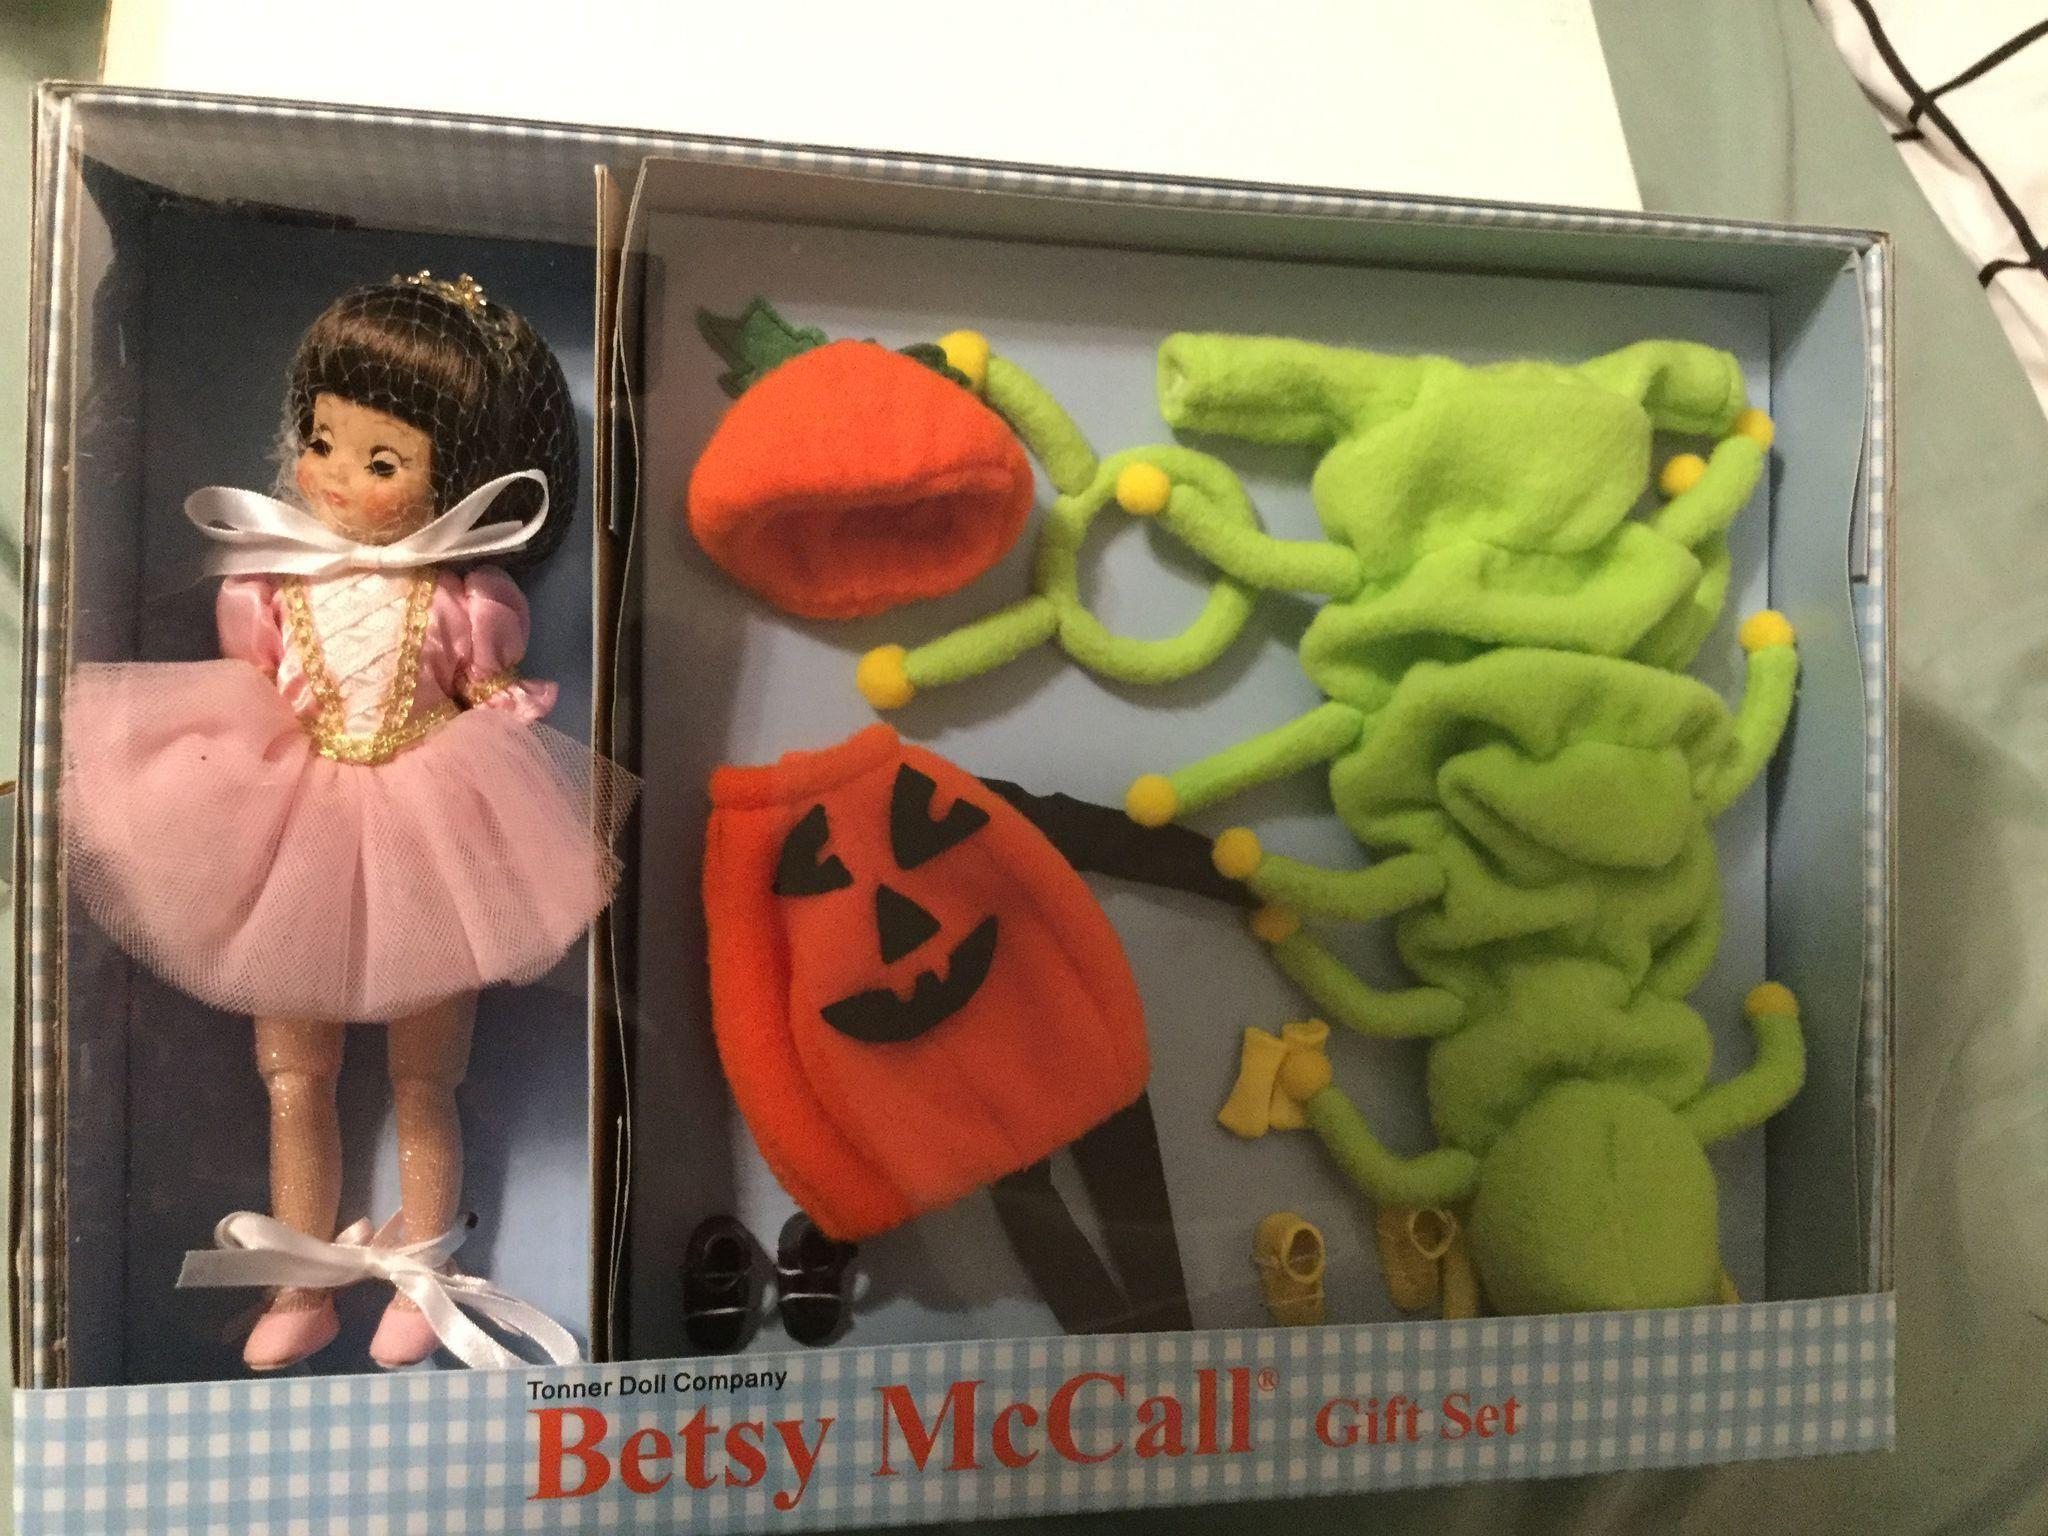 Betsy McCall CU Atlanta Halloween Fun Betsy Tonner Doll Co. Mint in box